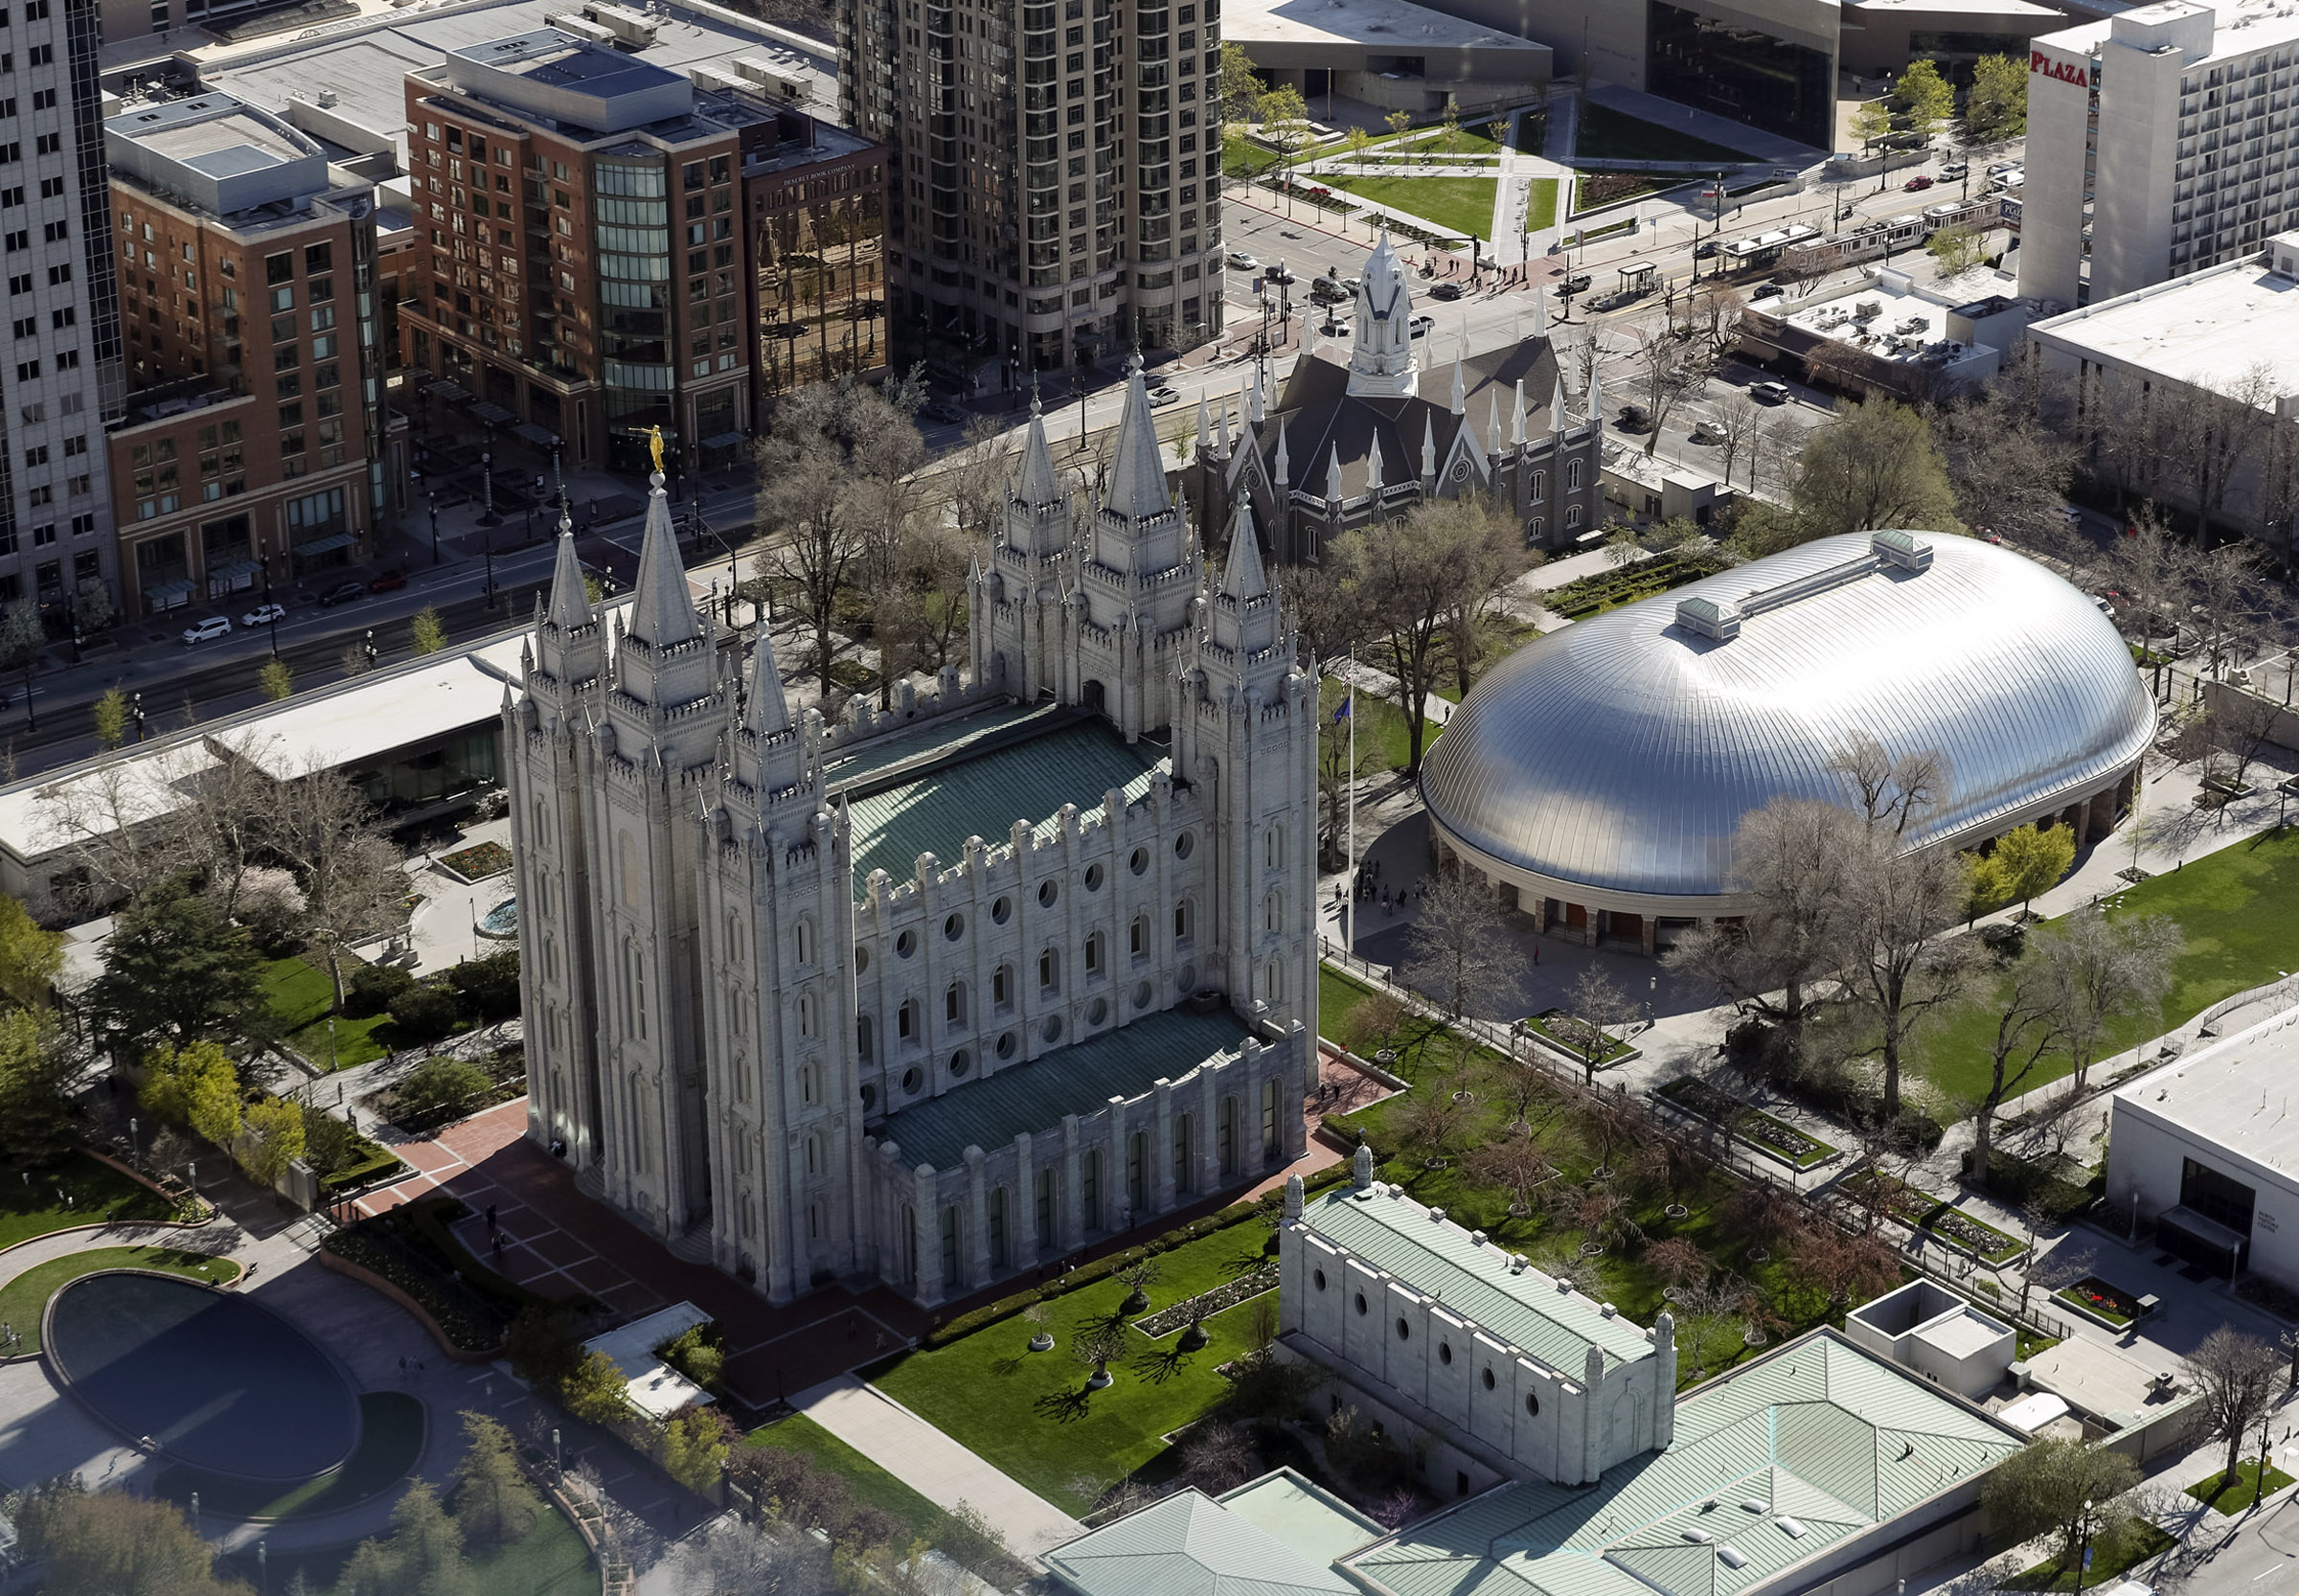 Temple Square will begin a phased reopening in summer 2021, starting with the Conference Center on June 14.